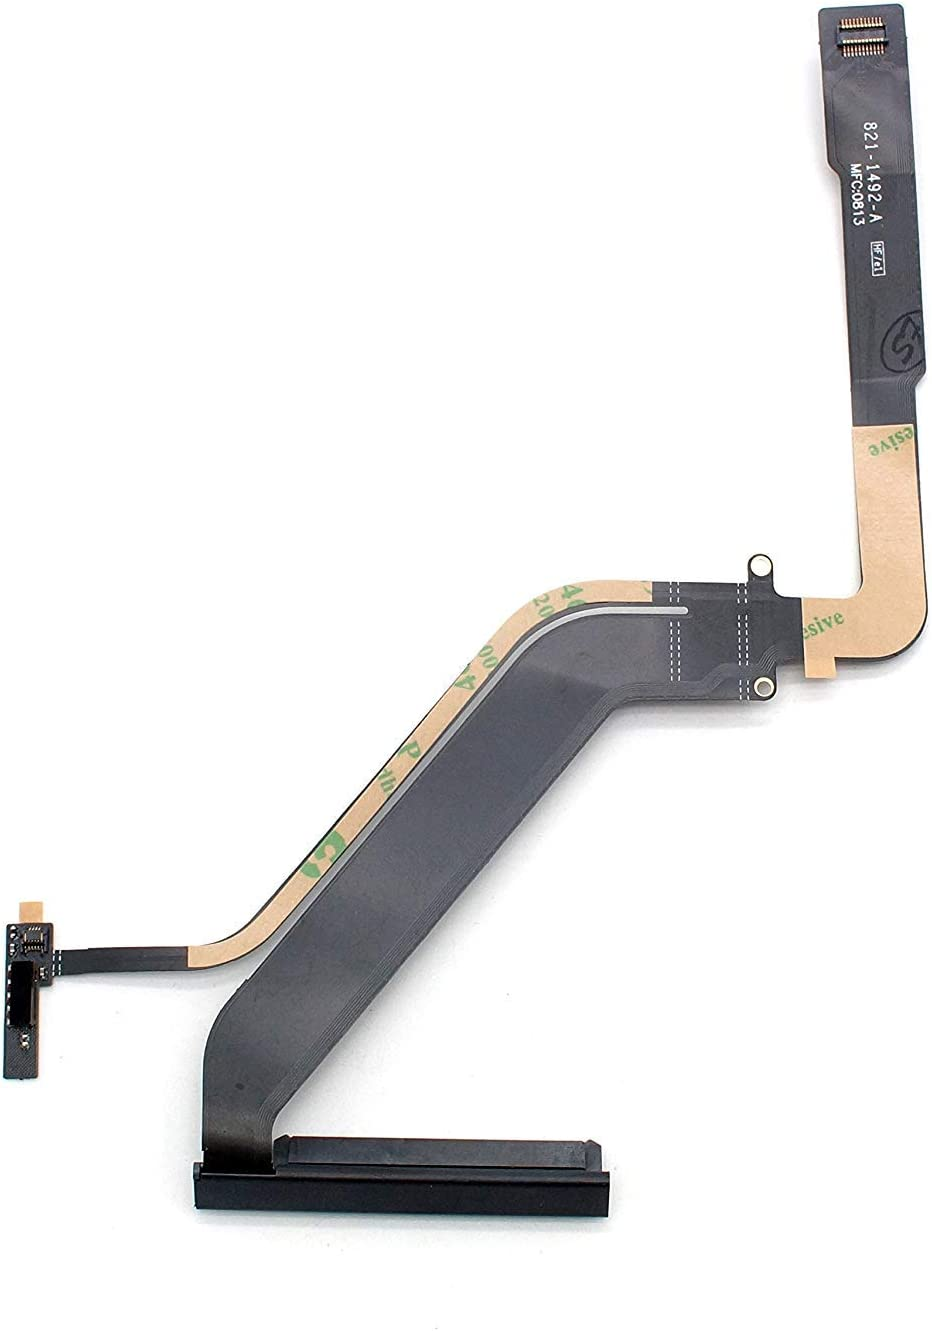 3CTOP Hard Drive Flex Cable 821-1492-A for 15 A1286 Mid 2012